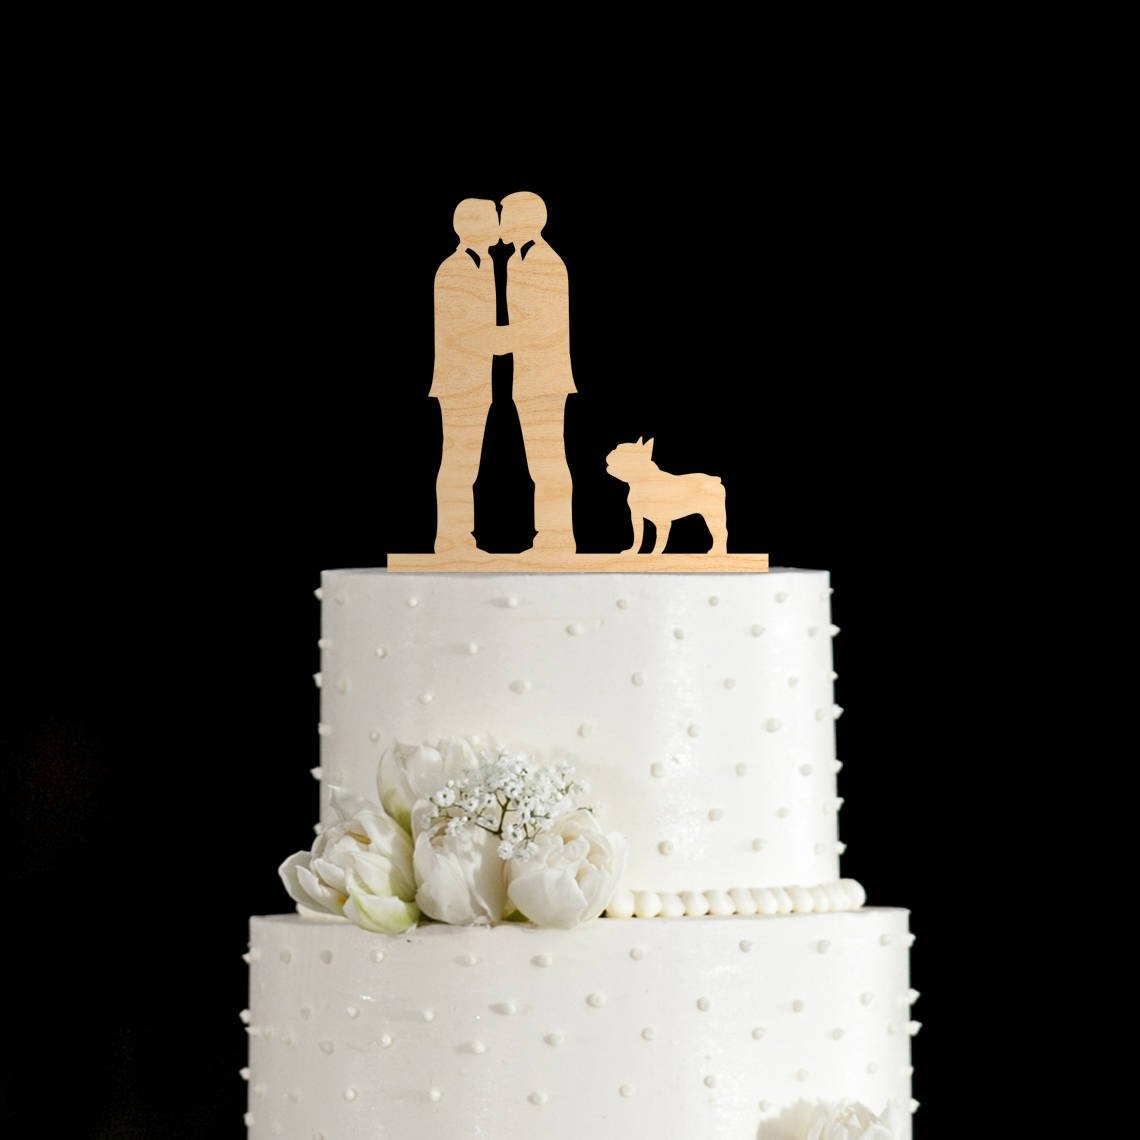 Susie85Electra Gay Wedding Cake Toppers with French Bulldog,Wedding Cake Toppers Rustic Wood,Country Wedding Decor